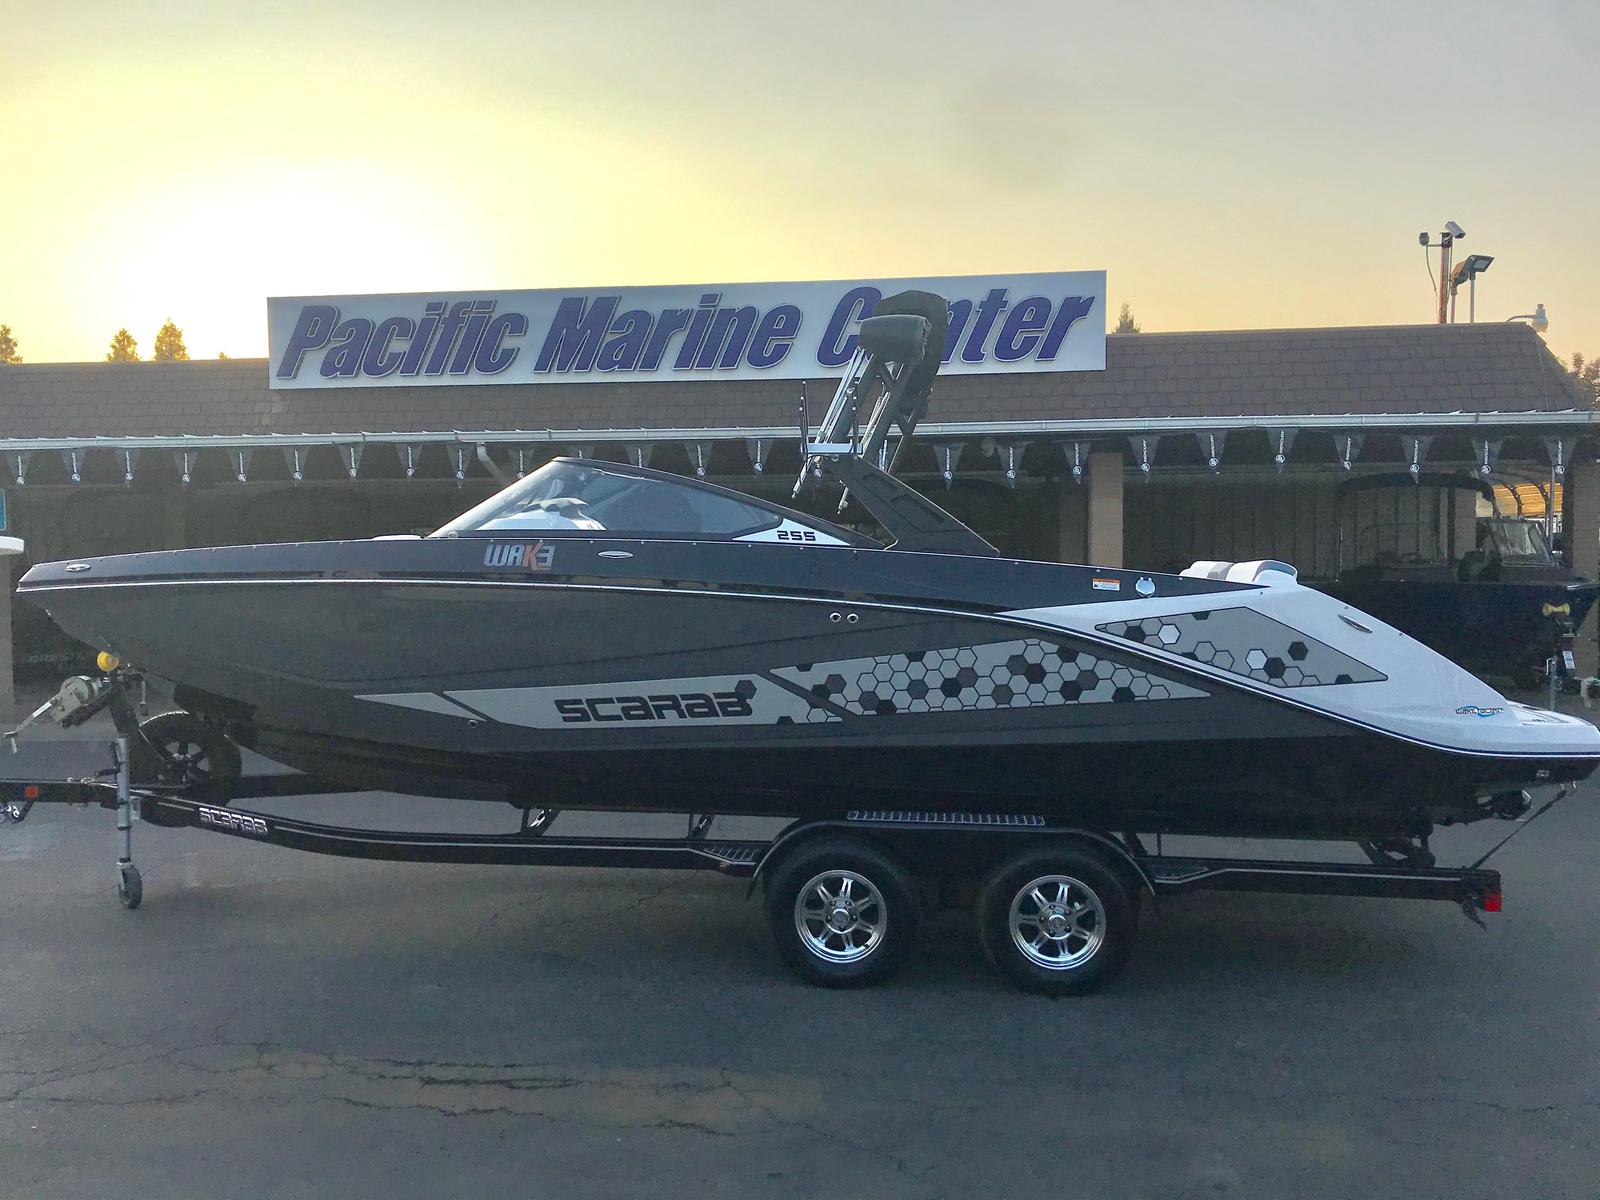 Scarab 255 ID w/ twin 250 Rotax engines - 500HP WAKE Edition